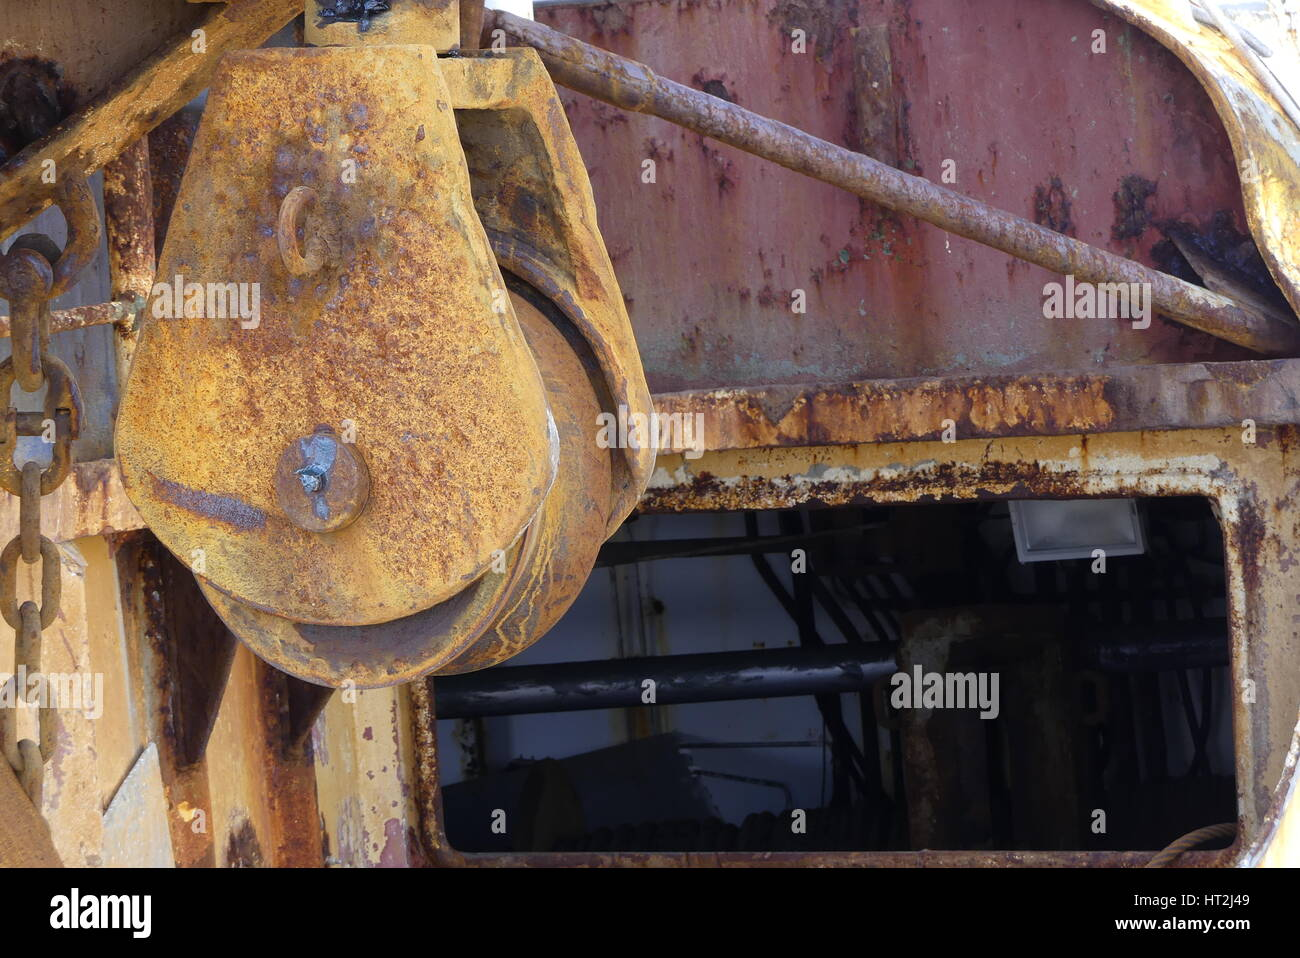 Closeup of  trawler cable warp pulley on the stern of a steel fishing boat with rust and corrosion by salt water - Stock Image